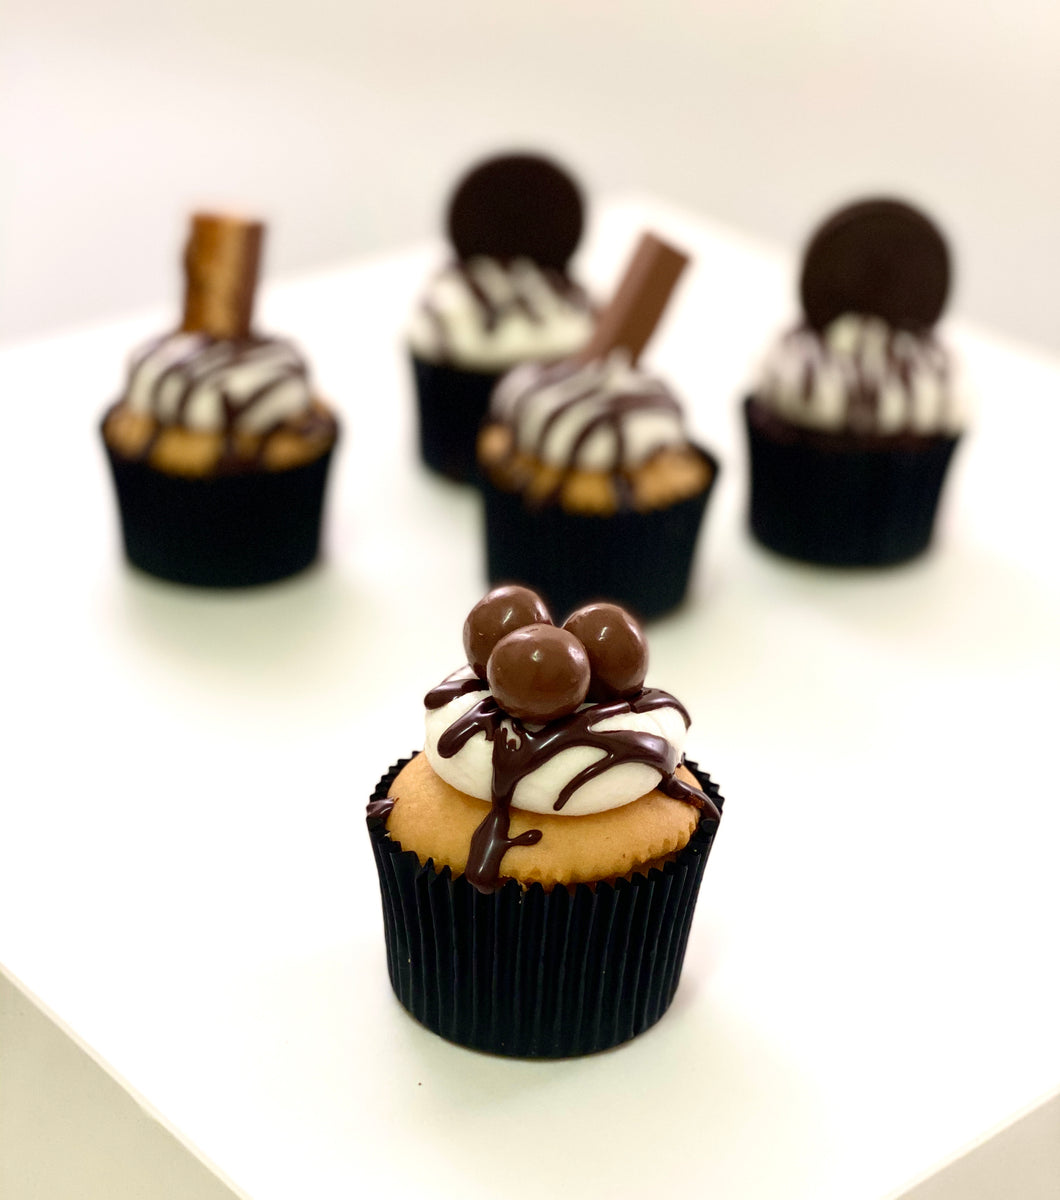 CUPCAKES MALTESER 6 PACK GIFT BOX